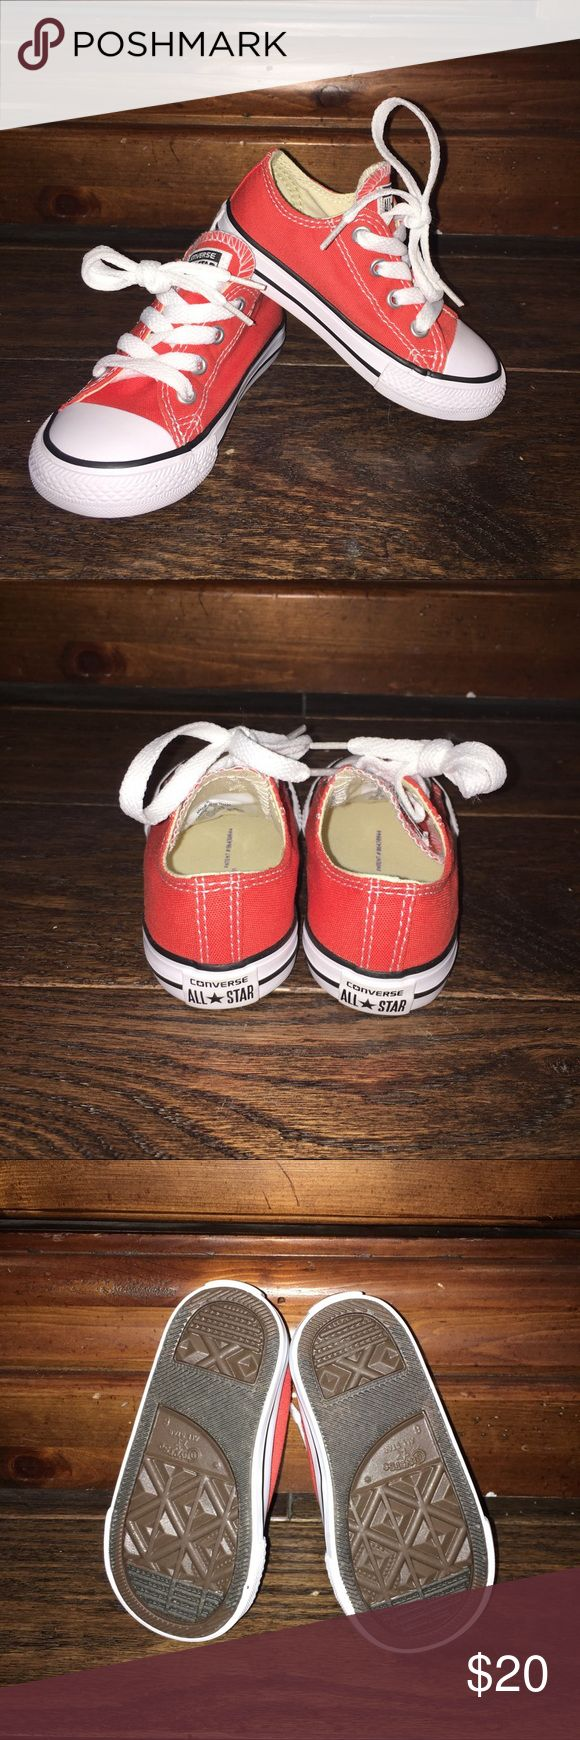 NIB Converse Toddler Low All Star Sneakers Ornge 8 New in box. Size 8 toddler canvas sneakers in orange. Sorry nontrades, but offers welcomed. Pricing comments will be ignored. Converse Shoes Sneakers